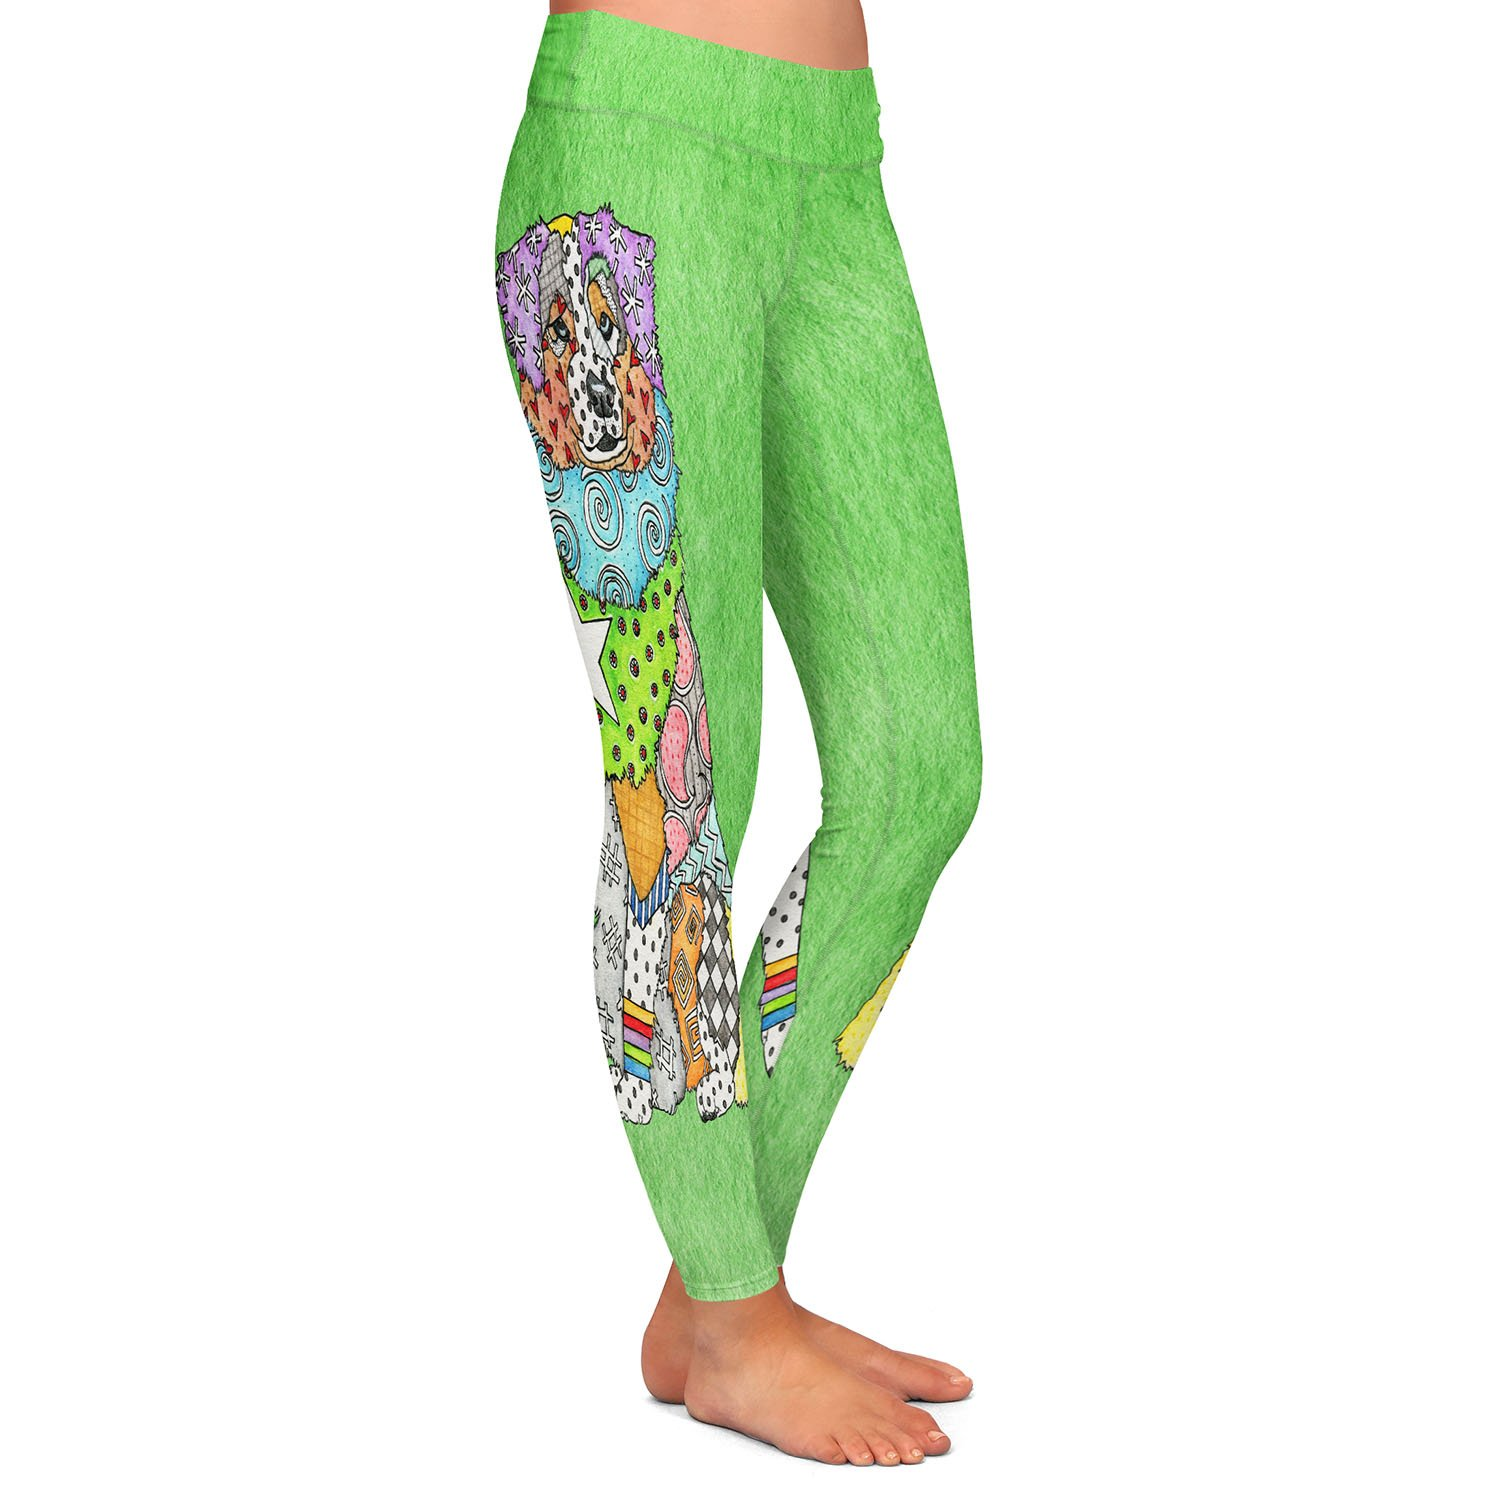 Athletic Yoga Leggings from DiaNoche Designs by Marley Ungaro Australian Shepherd Green